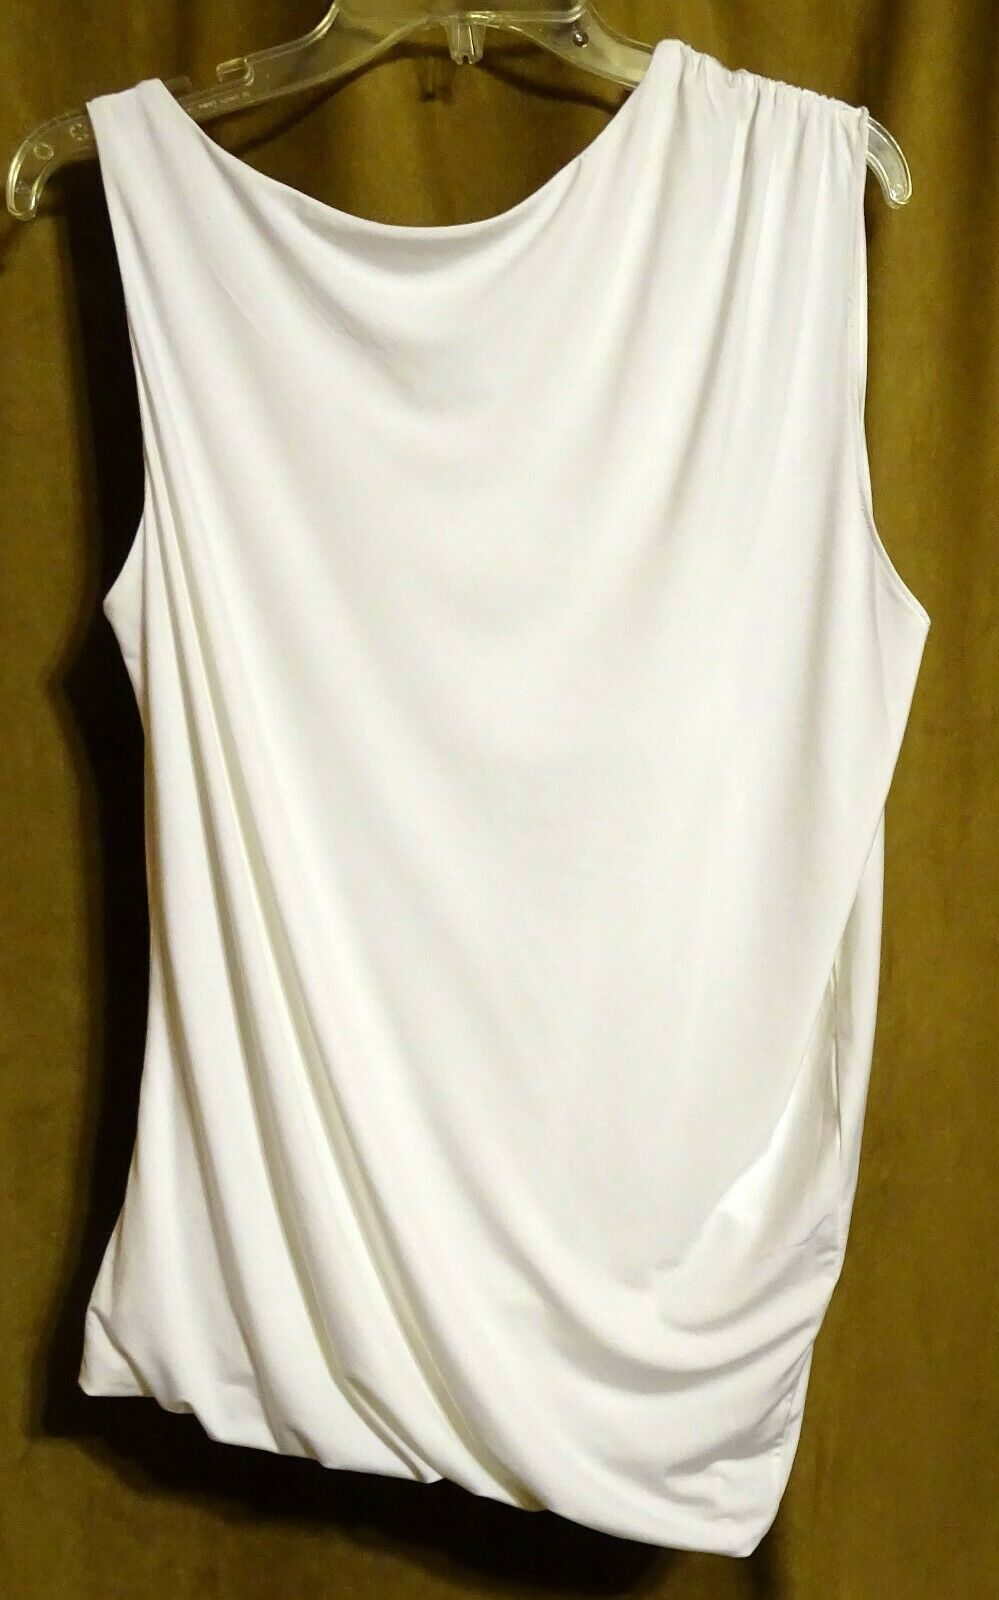 NEW EXPRESS $35 WHITE ASYMMETRIC DRAPED LINED SLEEVELESS DRESSY TOP BLOUSE S image 3